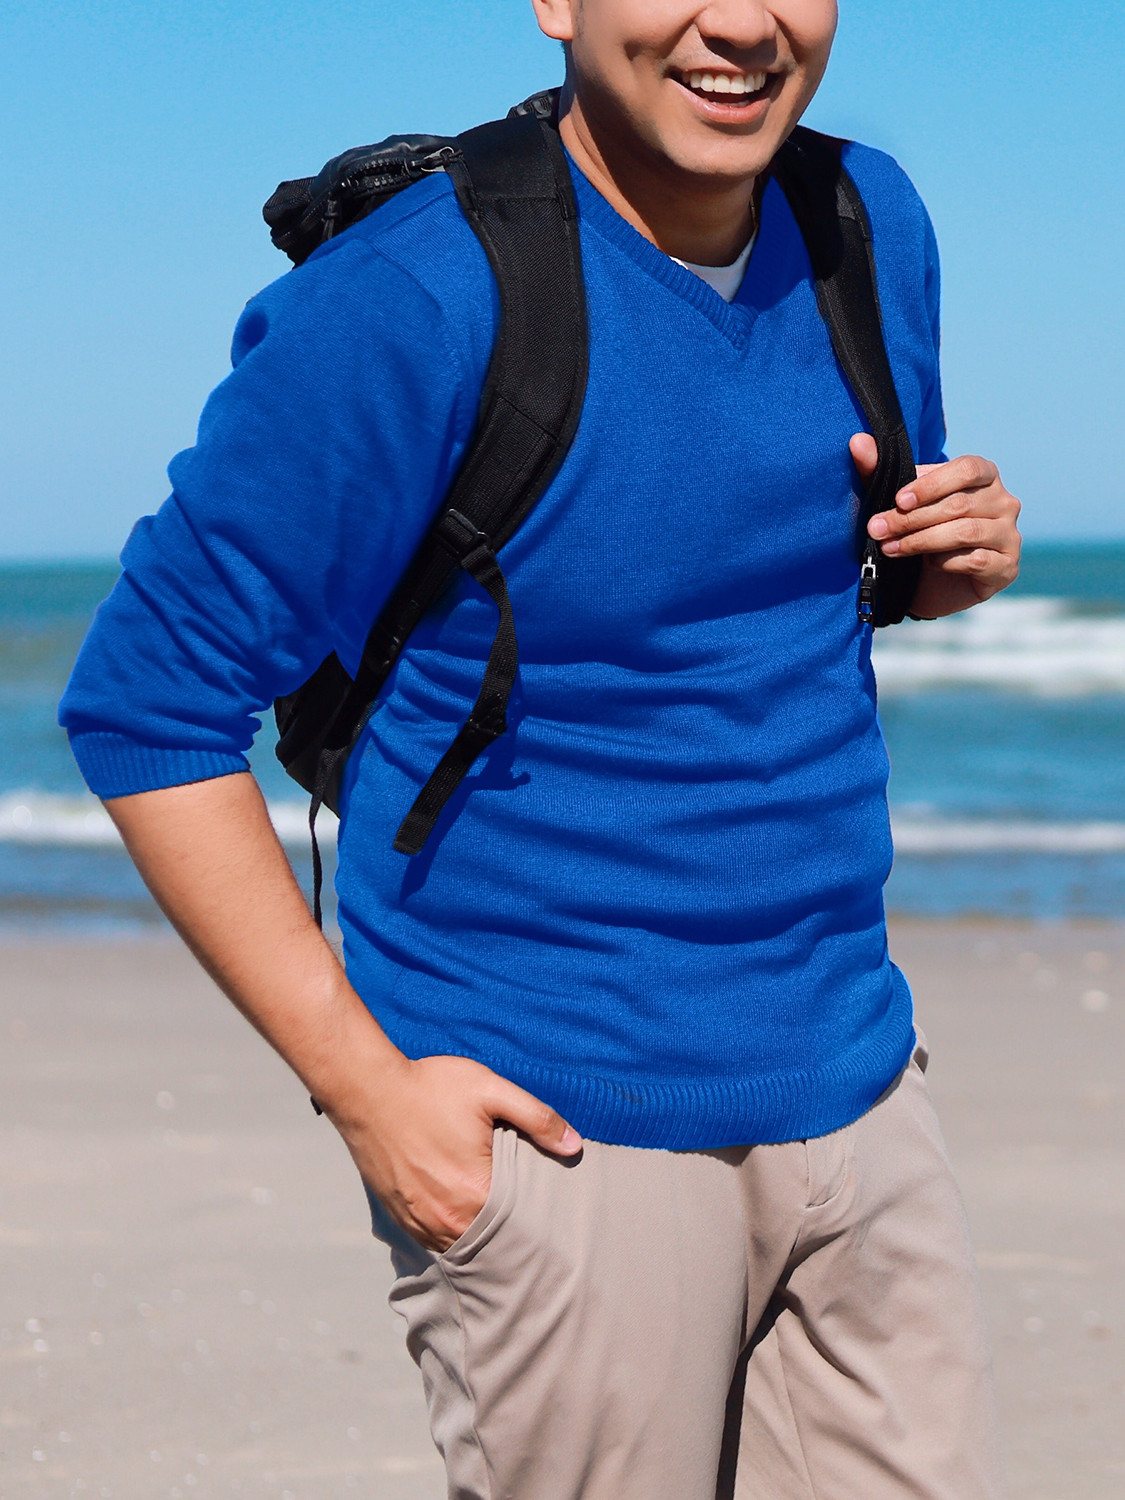 Men's outfit idea for 2021 with blue plain v-neck knitted sweater, white crew neck t-shirt, black backpack. Suitable for spring and fall.